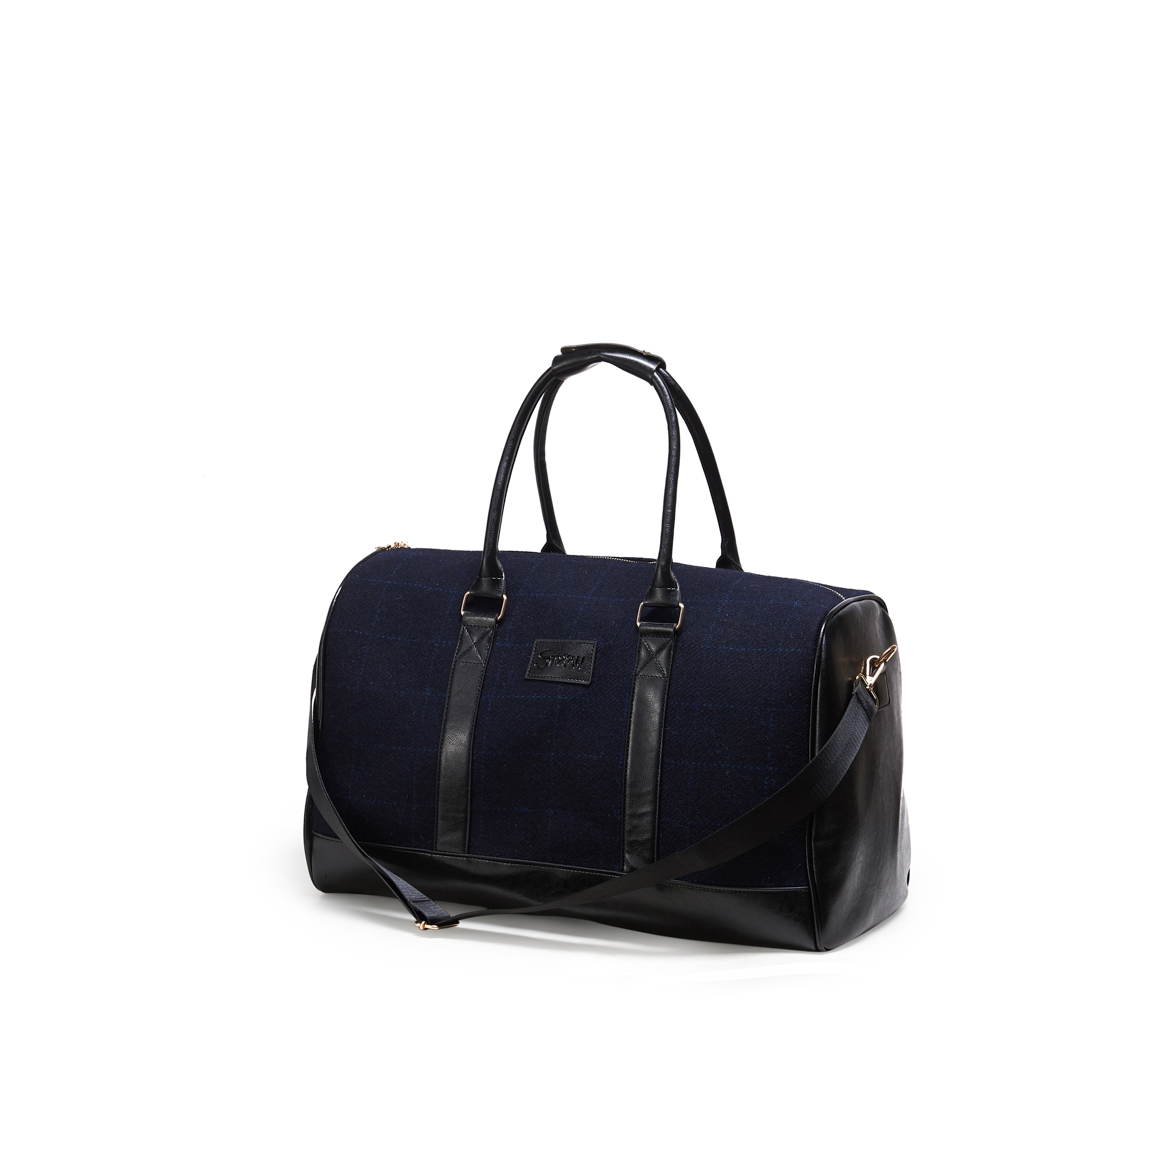 Holdall Luggage Bag